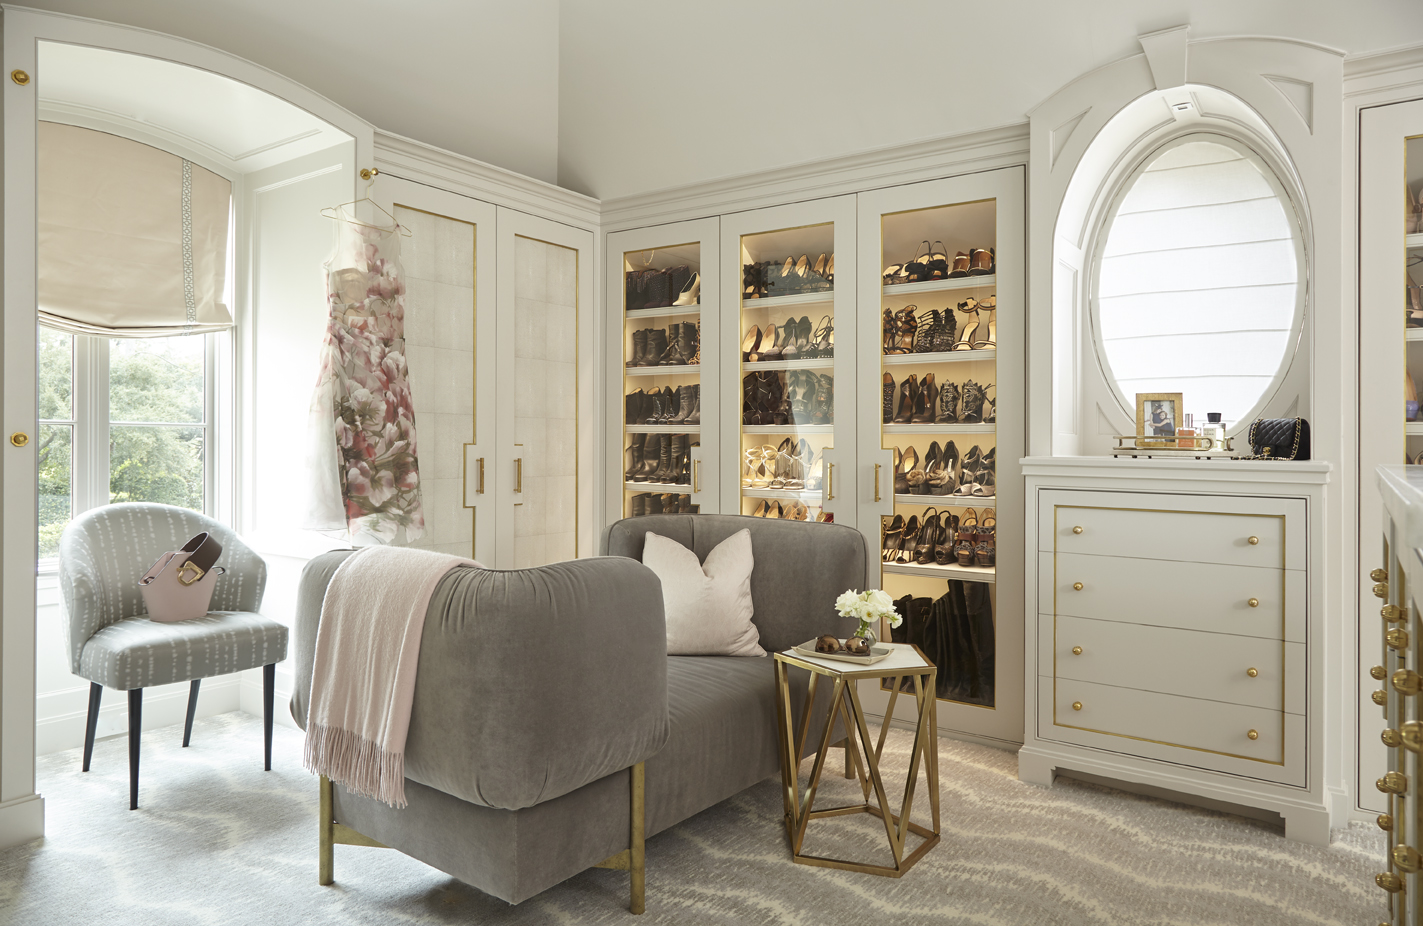 A range of cream-colored, built-in storage options line the walls of the dressing room.